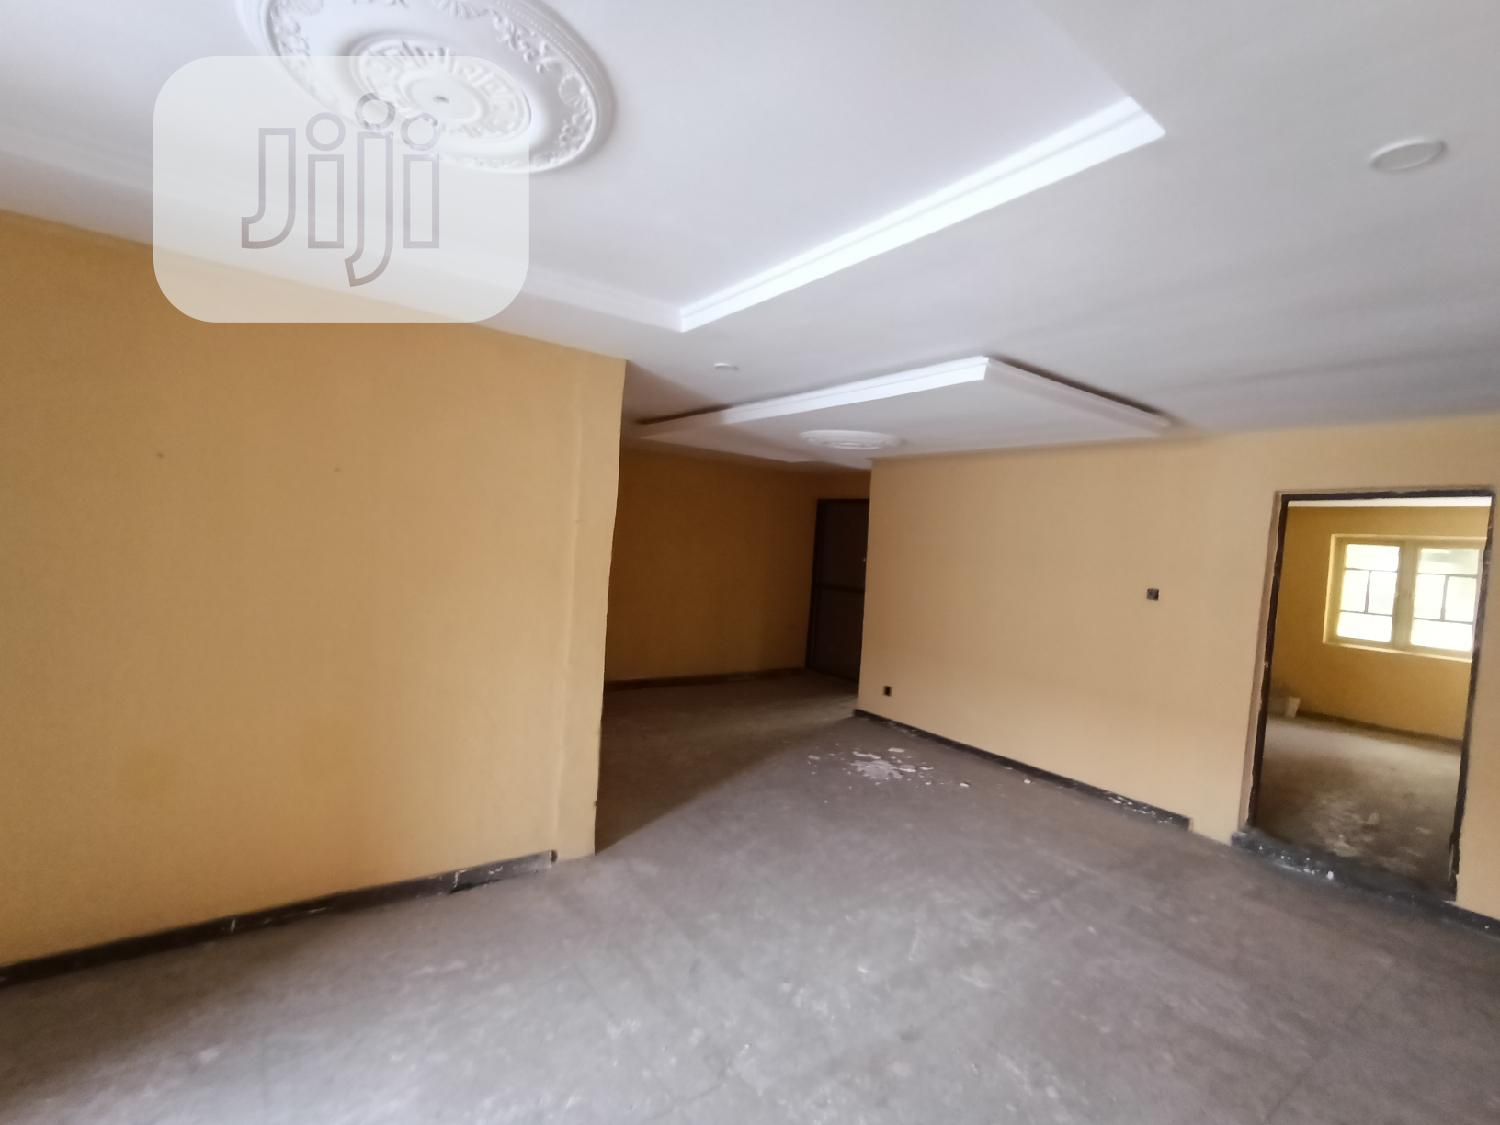 4 Units Of 3 Bedroom Flat With BQ In Opebi Ikeja | Houses & Apartments For Rent for sale in Ikeja, Lagos State, Nigeria